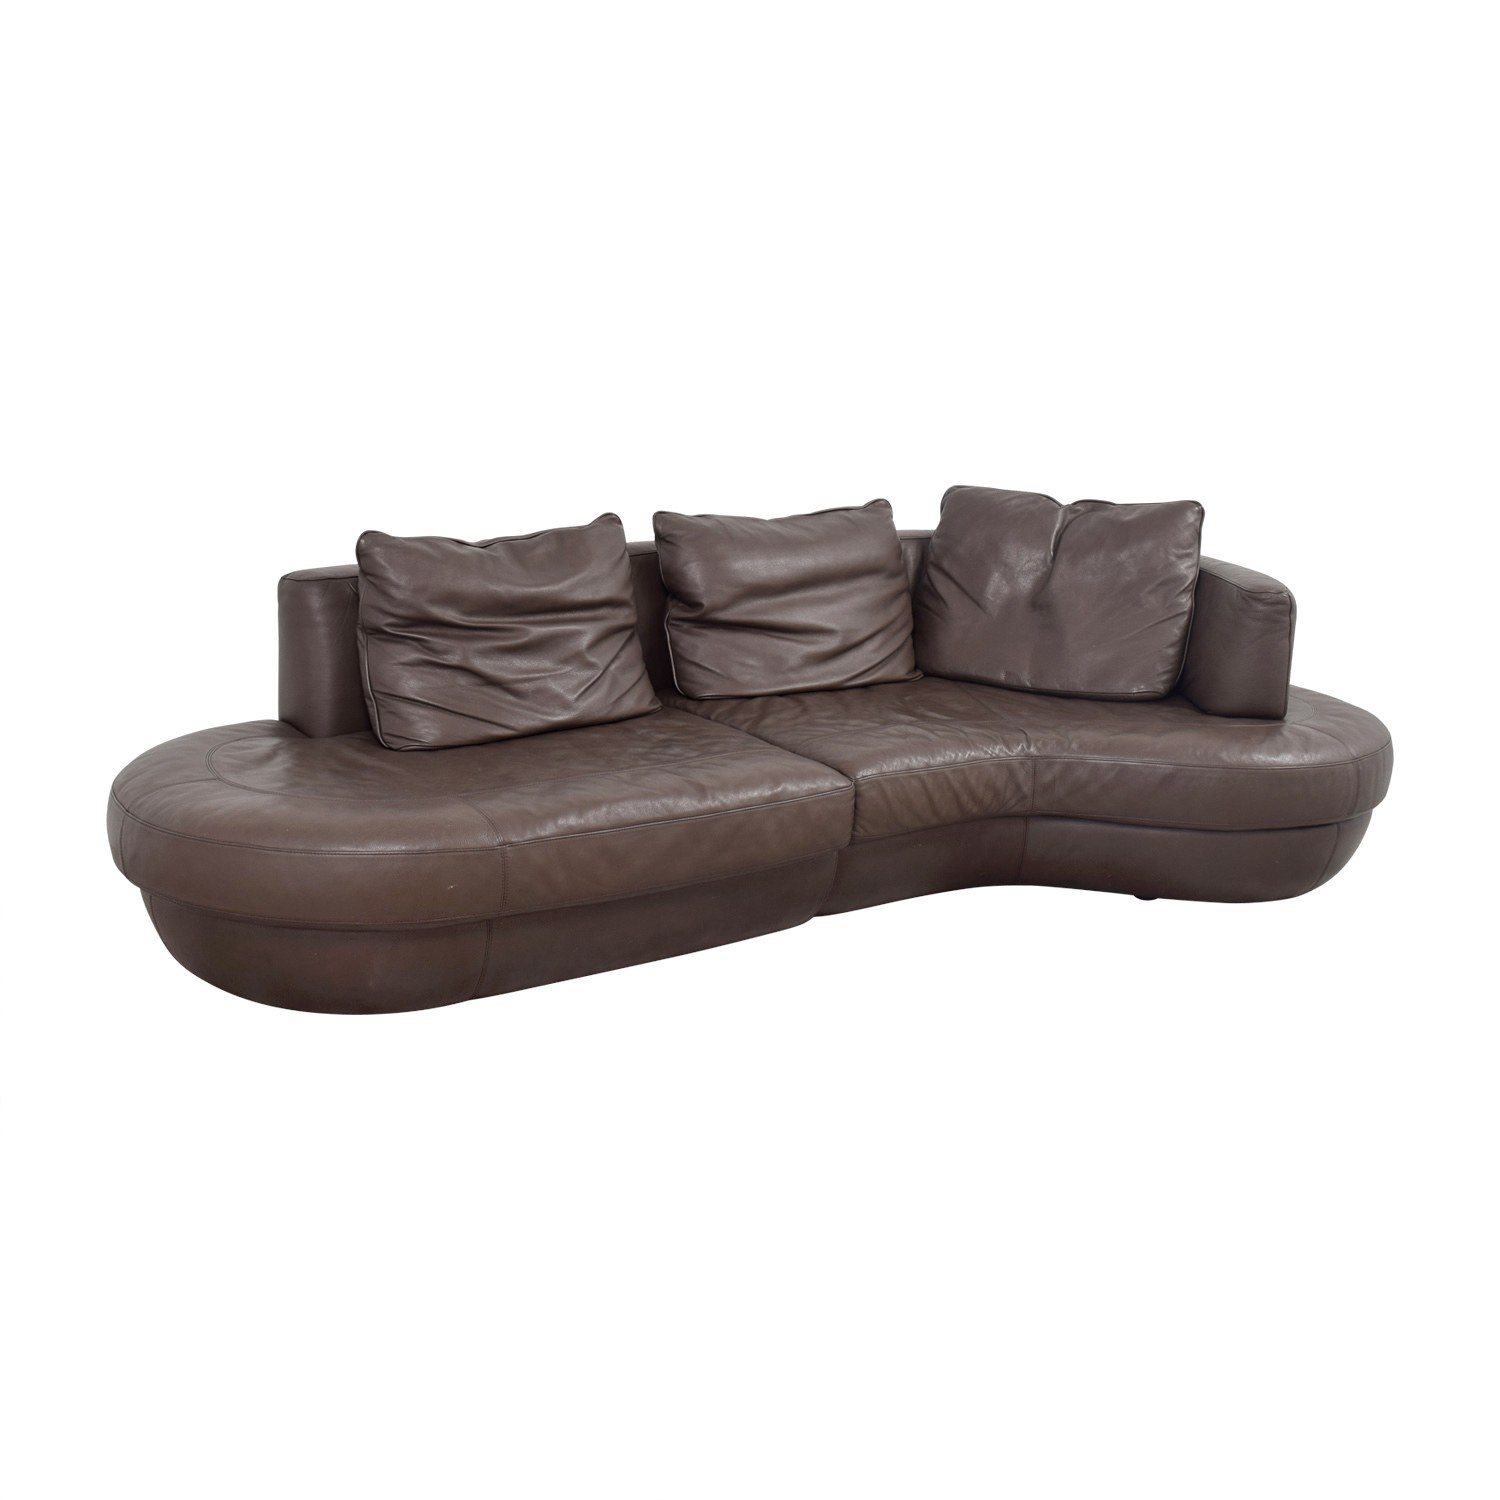 90 Off Natuzzi Natuzzi Rondo Brown Leather Curved